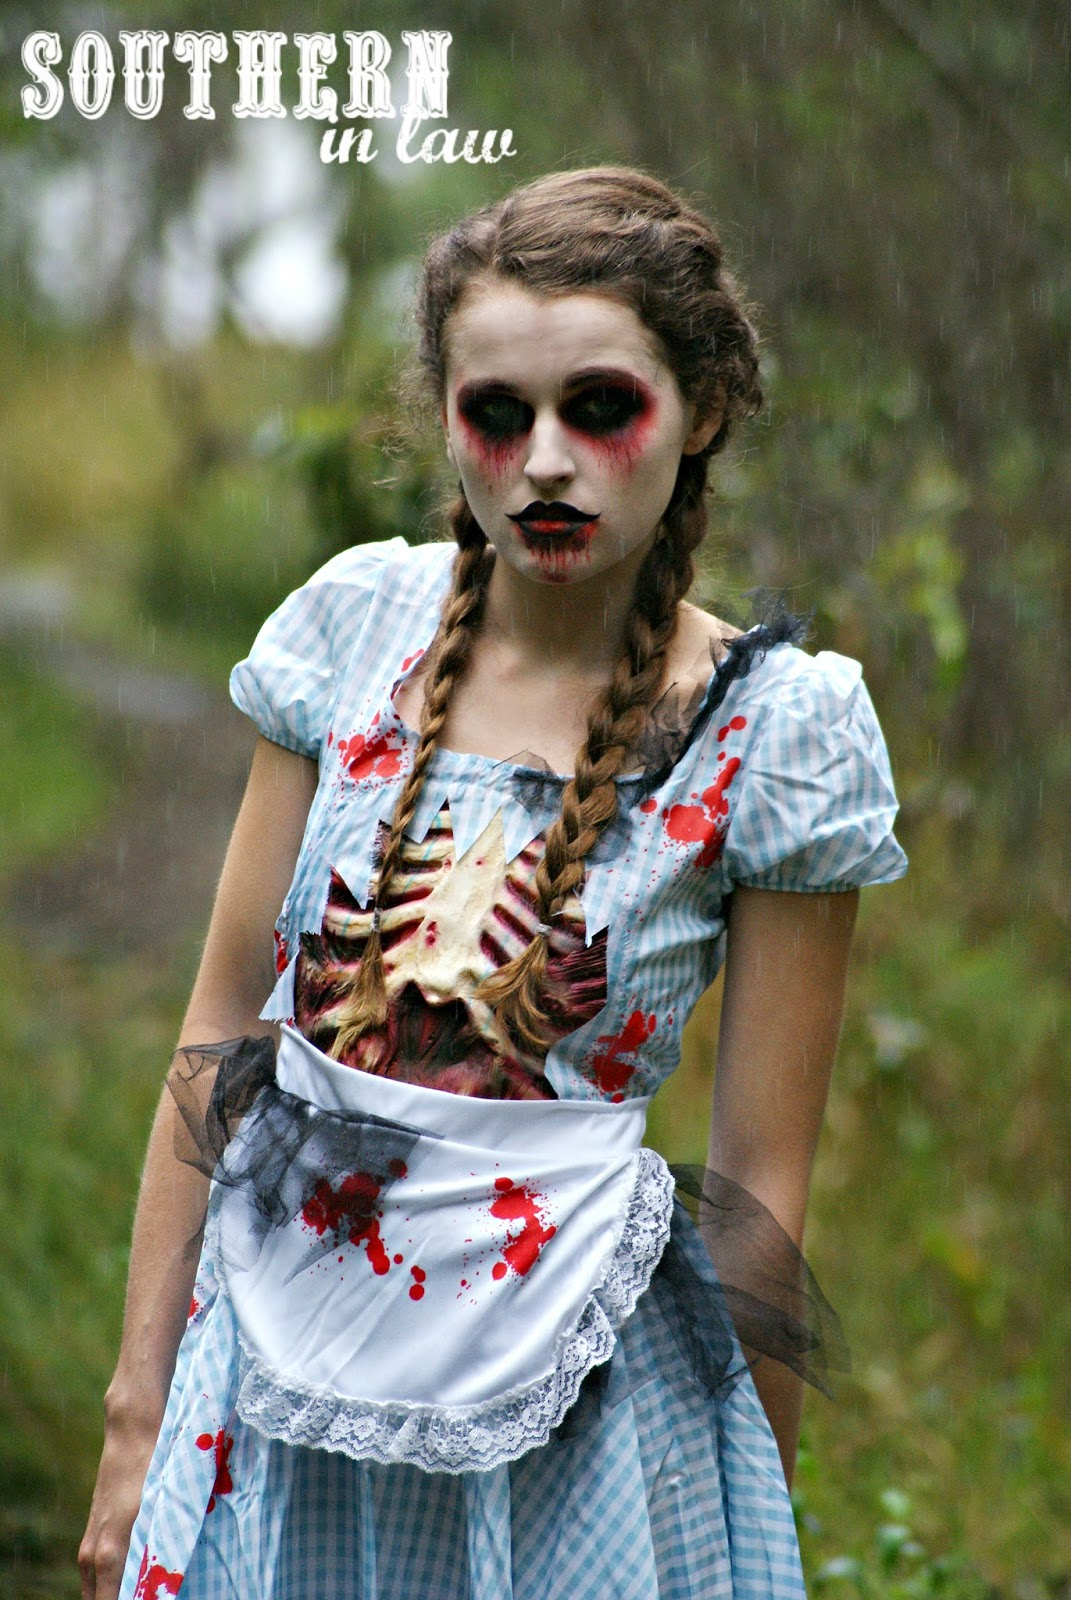 Southern In Law: Step by Step Halloween Zombie Look Tutorial